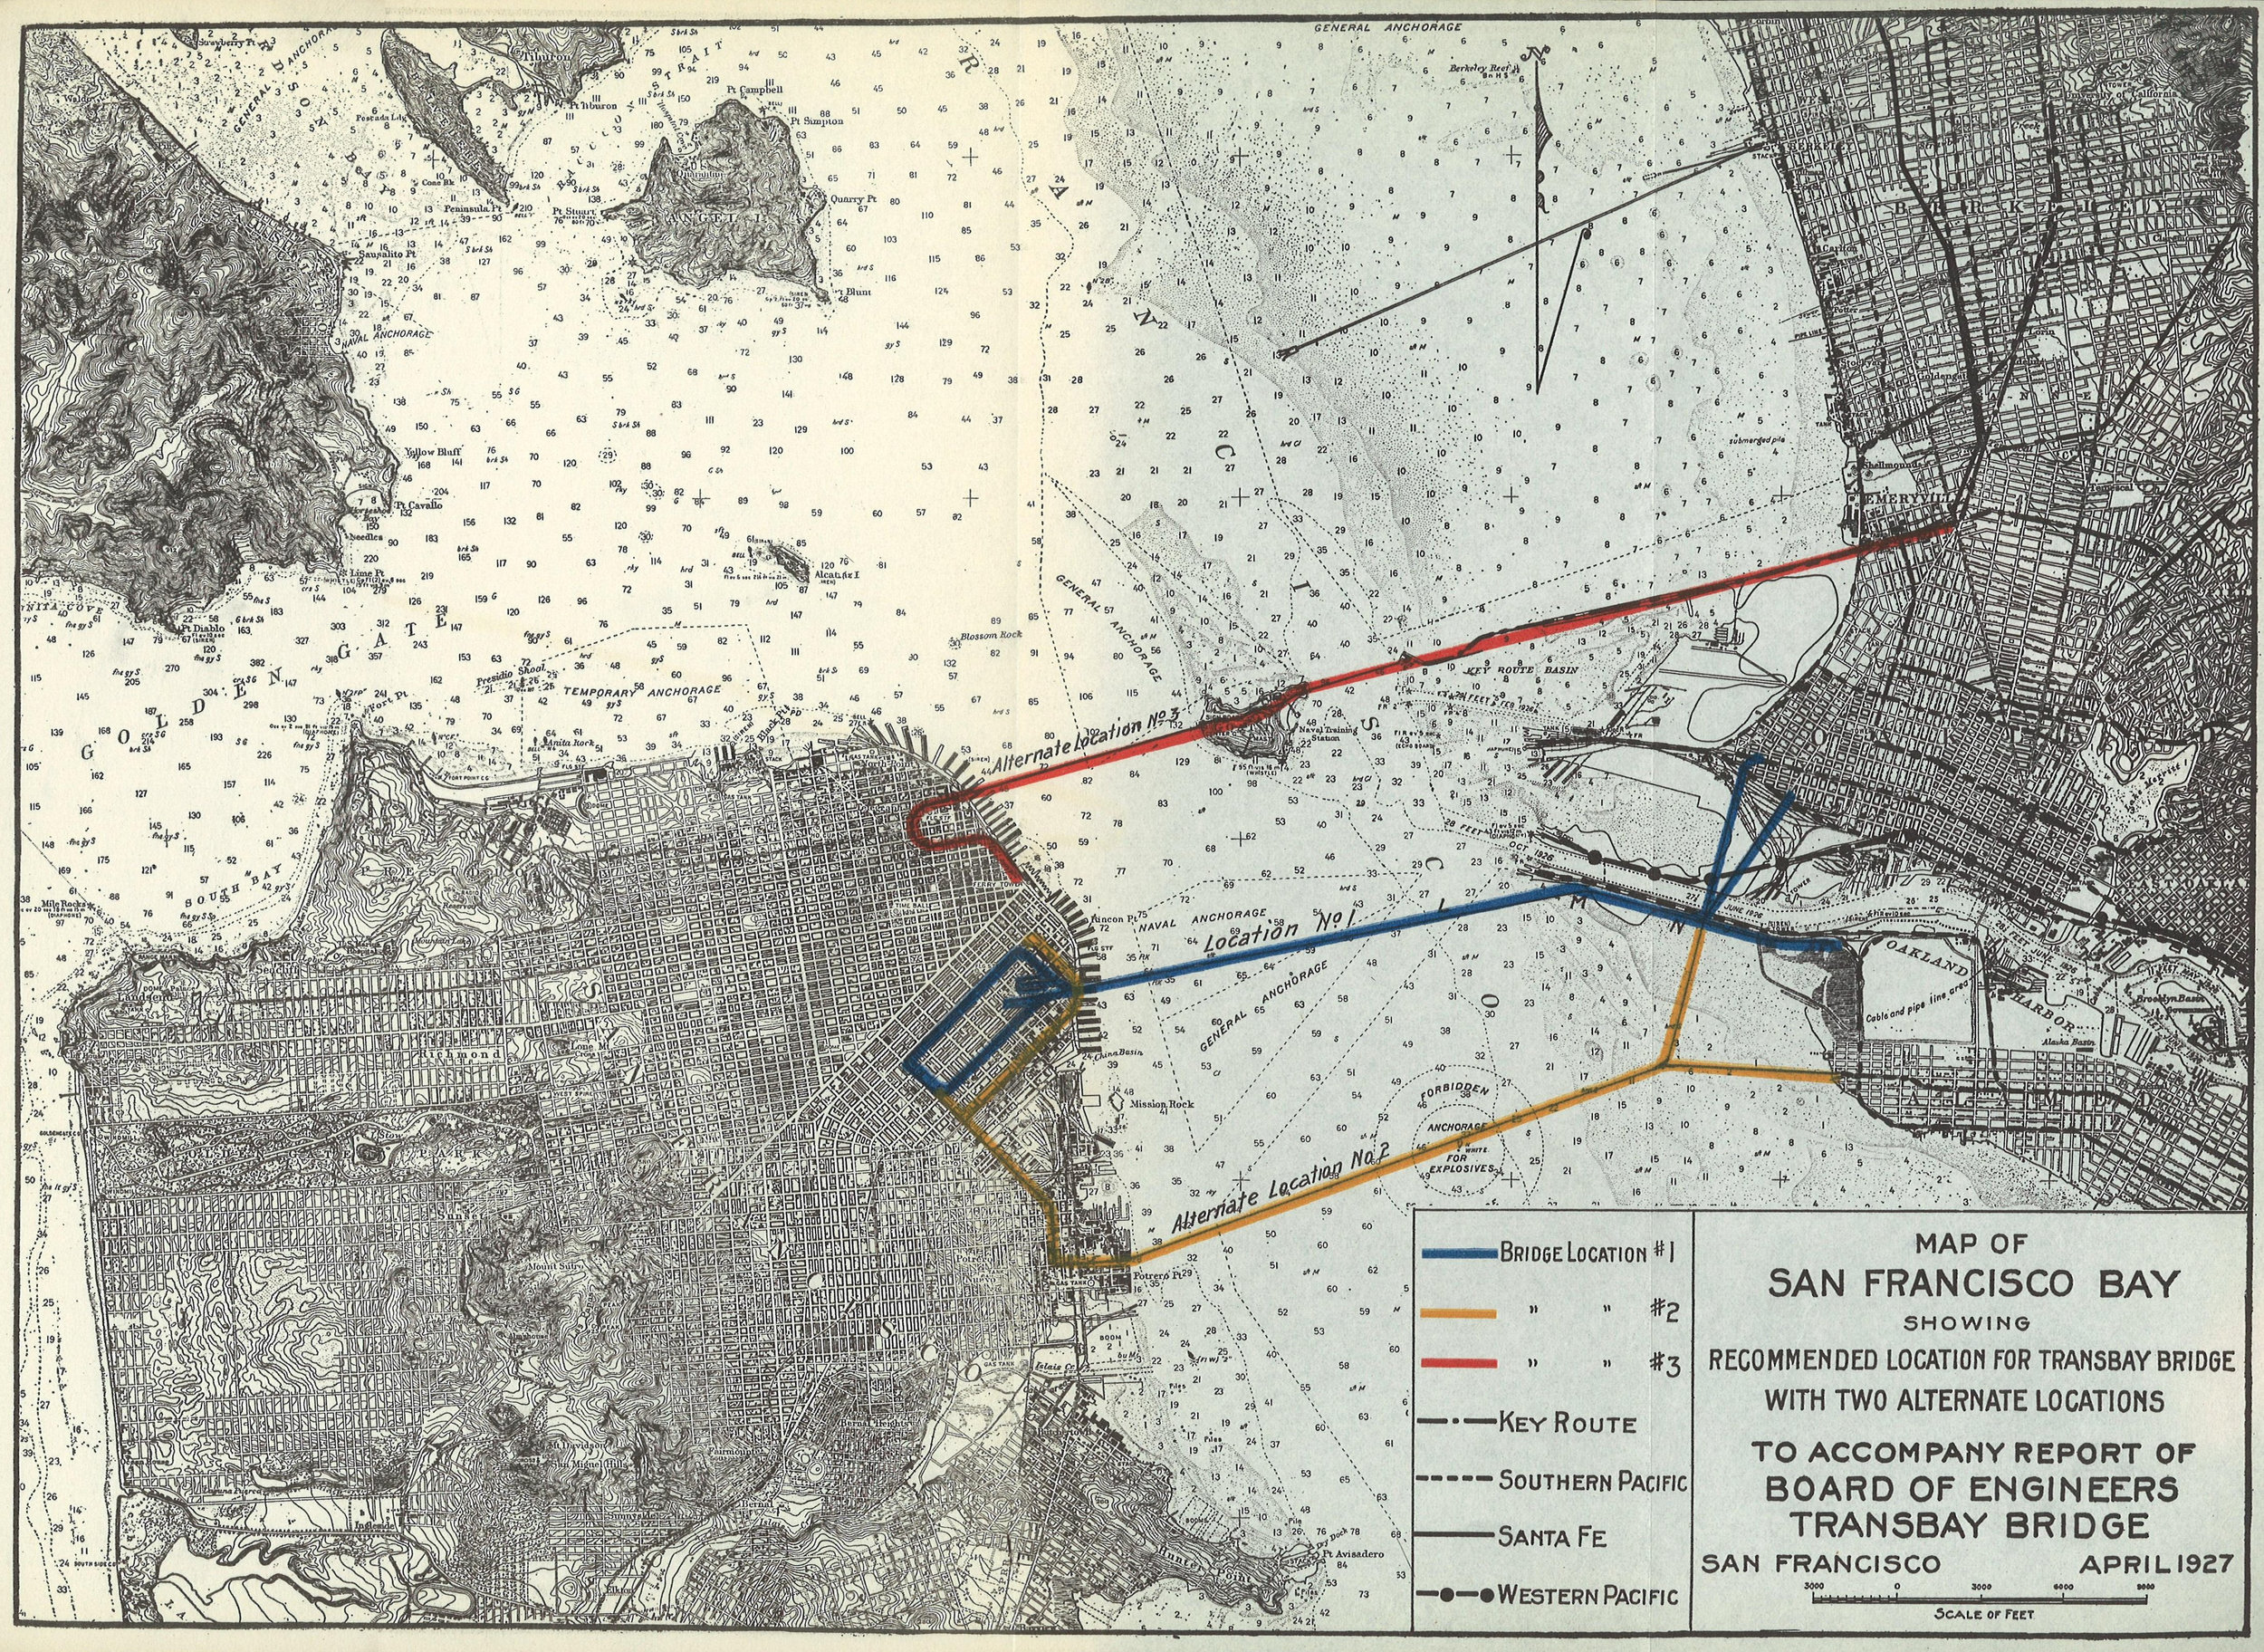 Map of San Francisco Bay Showing Recommended Location for Transbay Bridge with Two Alternate Locations, April 1927.   Report of the Bureau of Engineering of the Department of Public Works, City and County of San Francisco (Fiscal Year Ending June 30, 1927) , insert between pages 18 and 19. Map source:  Internet Archive . Image source:  Found SF .